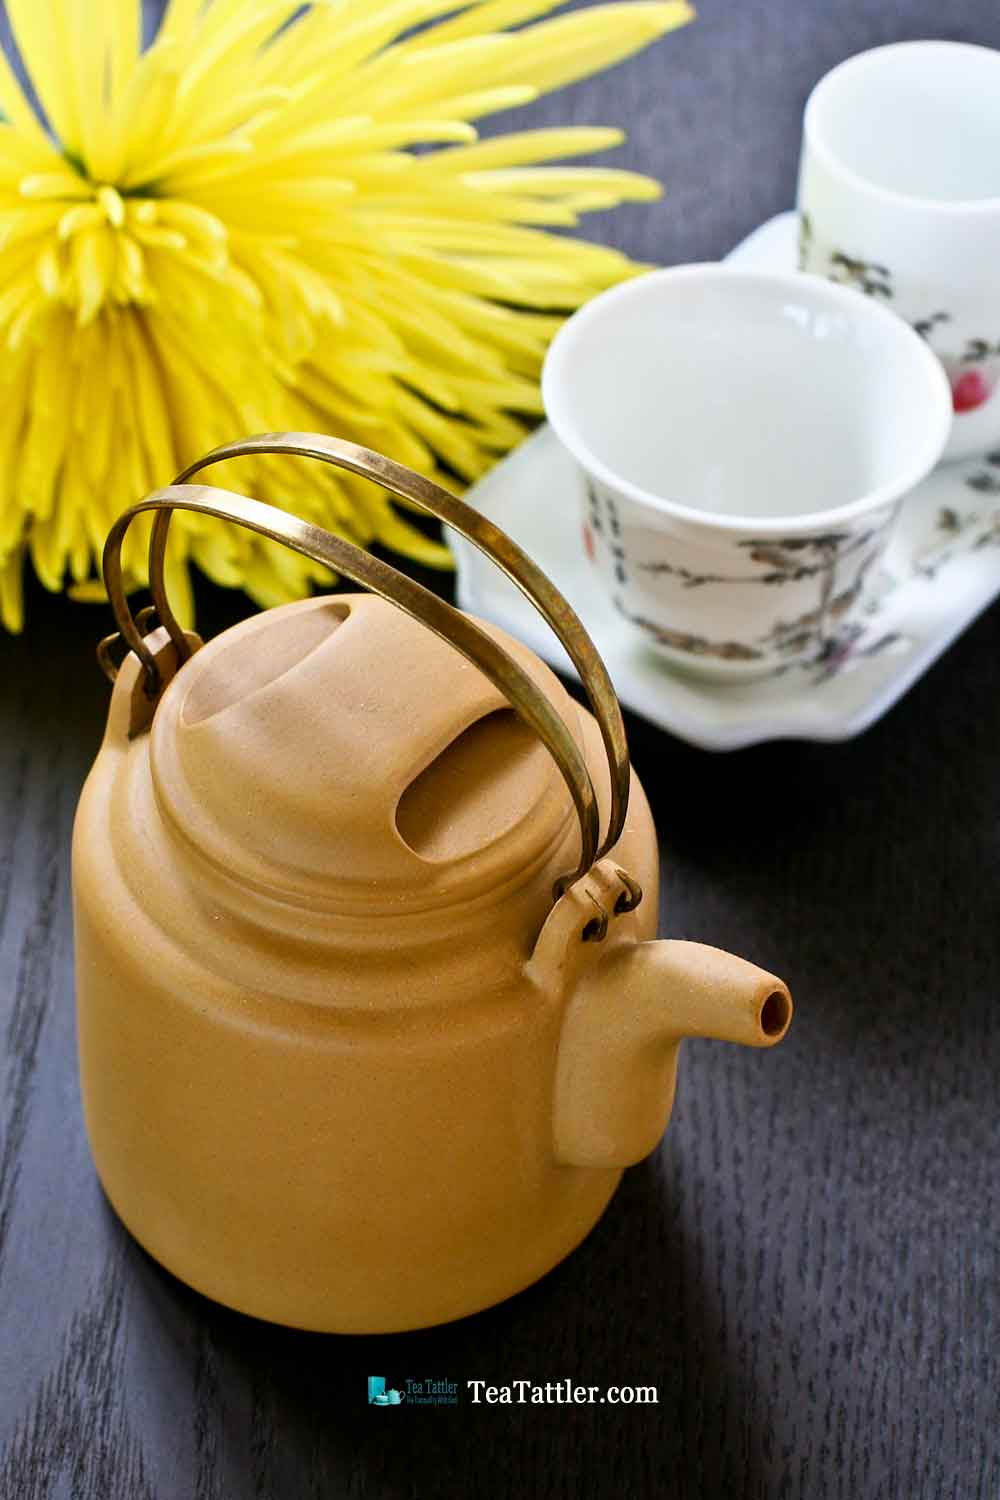 This pretty Brass Handled Yixing Teapot is made with light mustard yellow clay. It measures 2½ inches in diameter and is 2¾ inches in height. | TeaTattler.com #brasshandledteapot #yixingteapot #coppergirderteapot